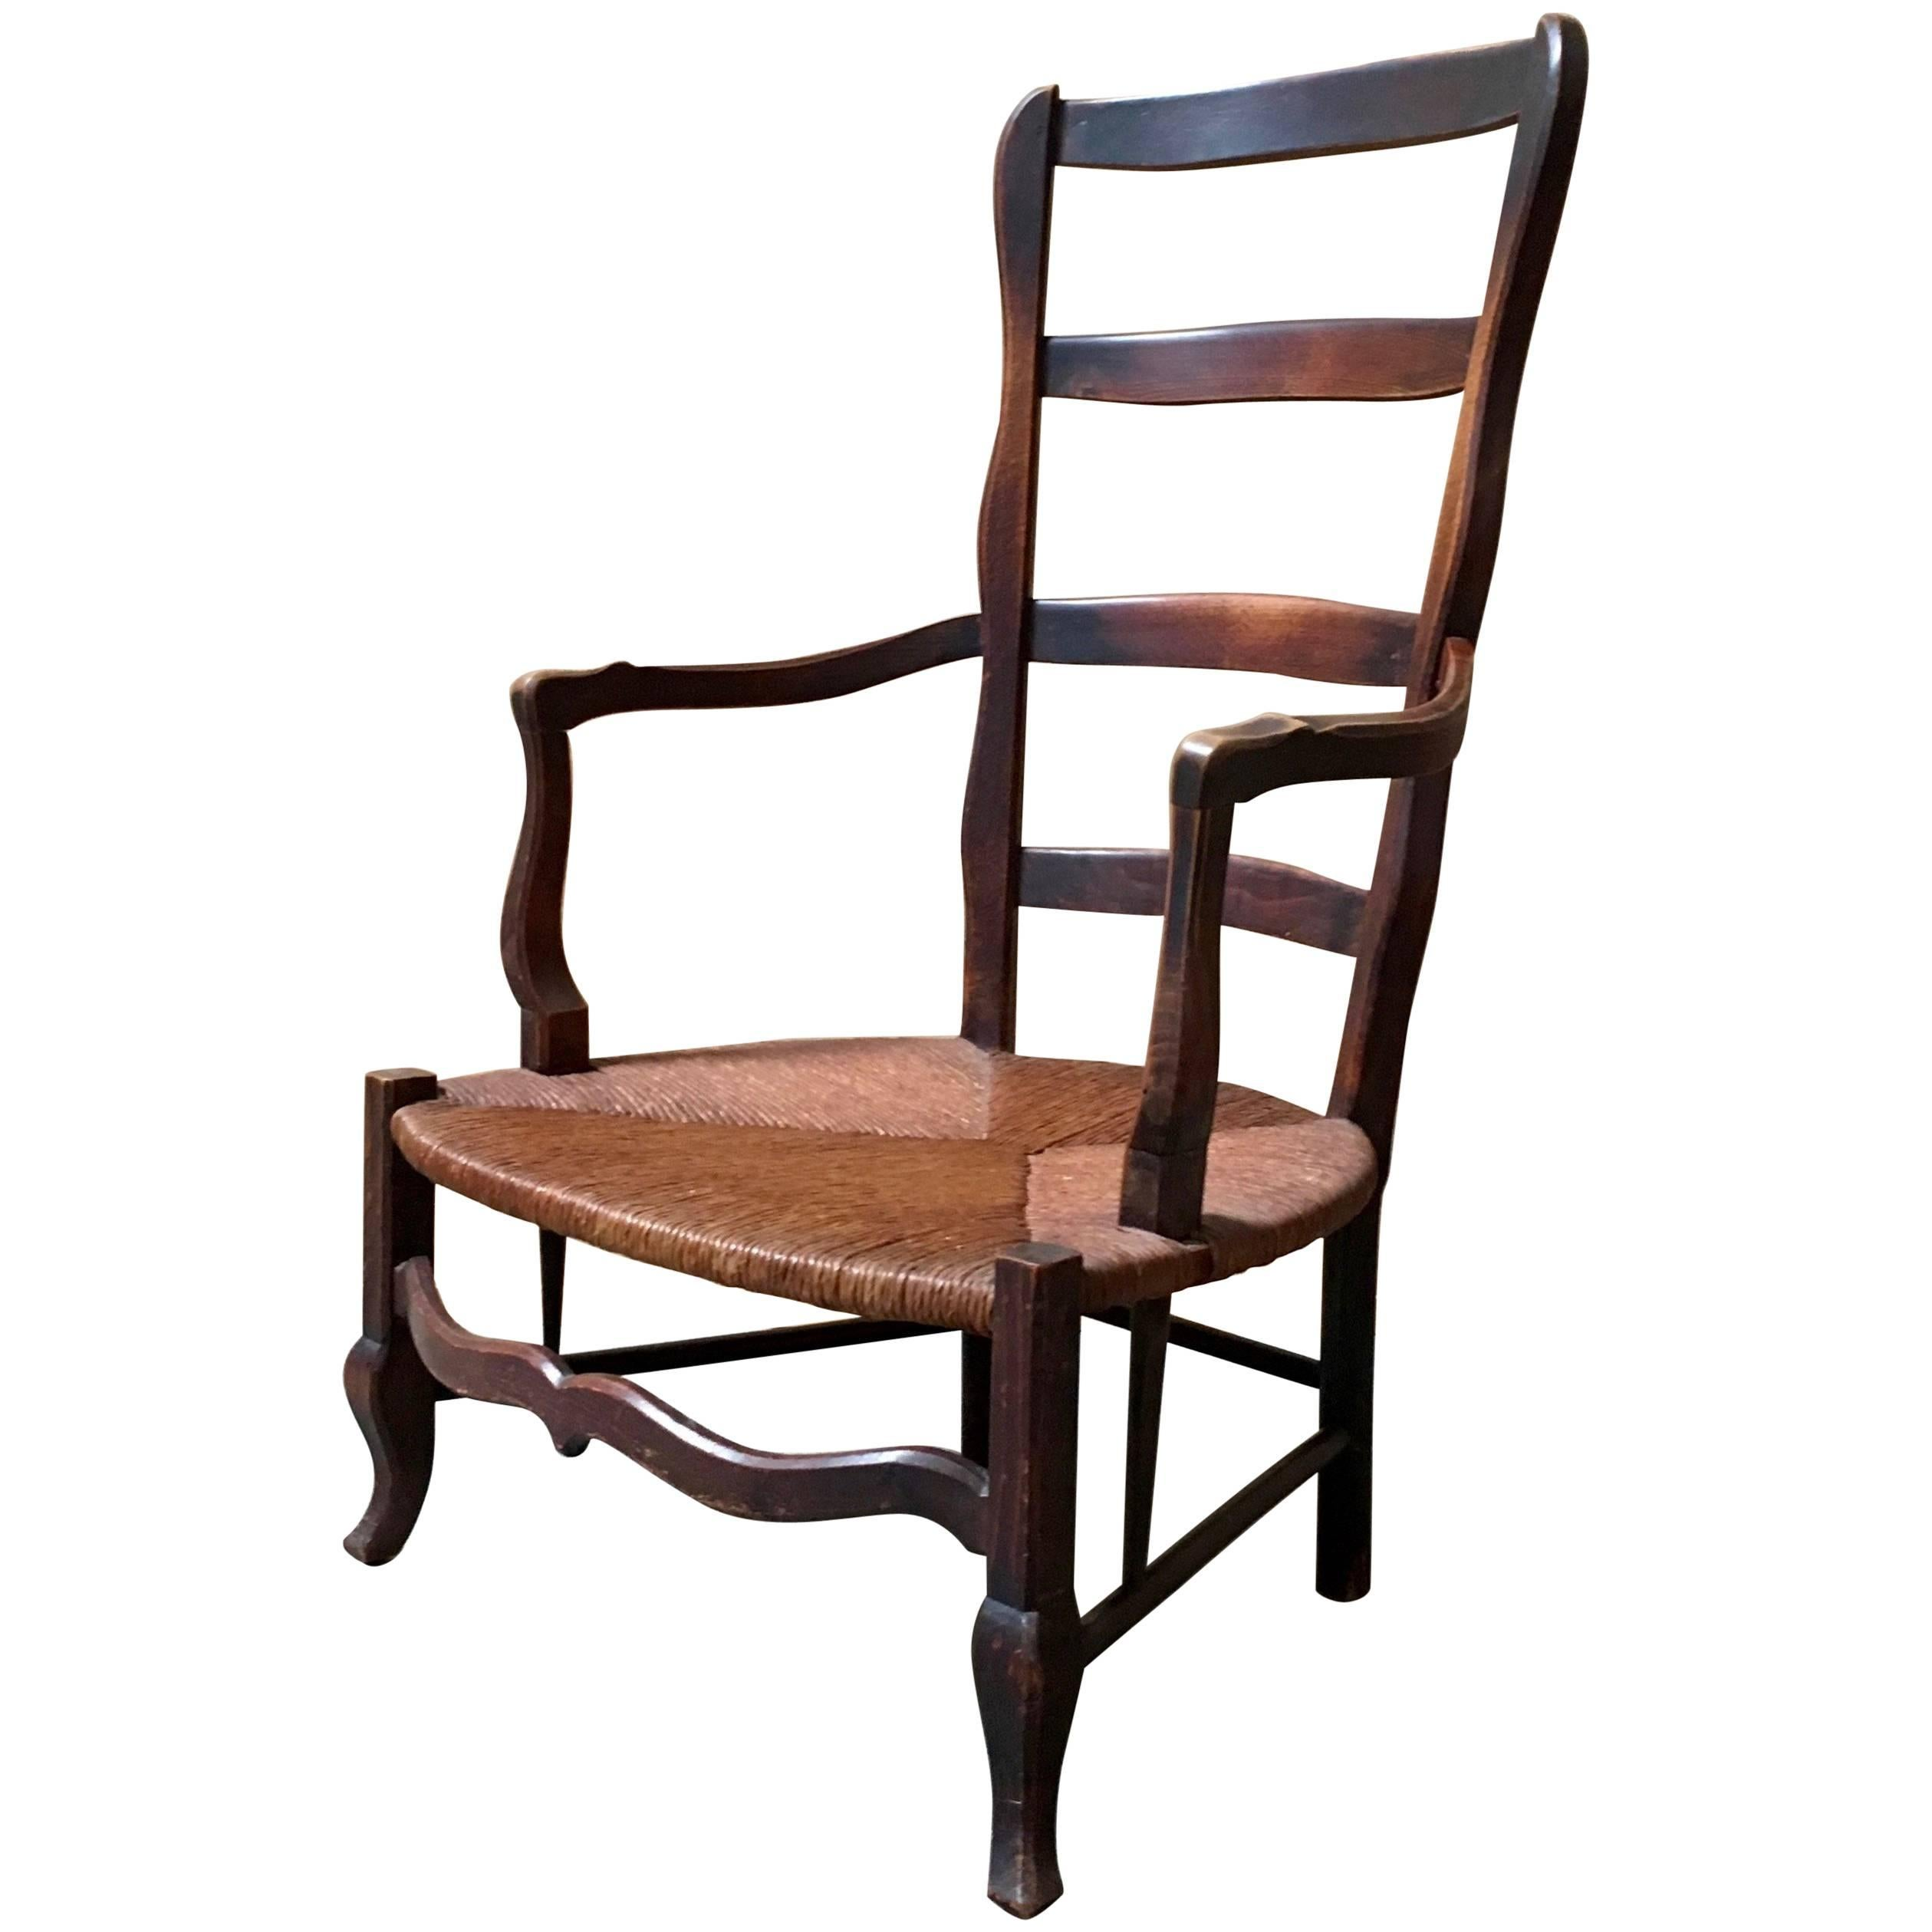 Rustic Country French Fireside Chair For Sale